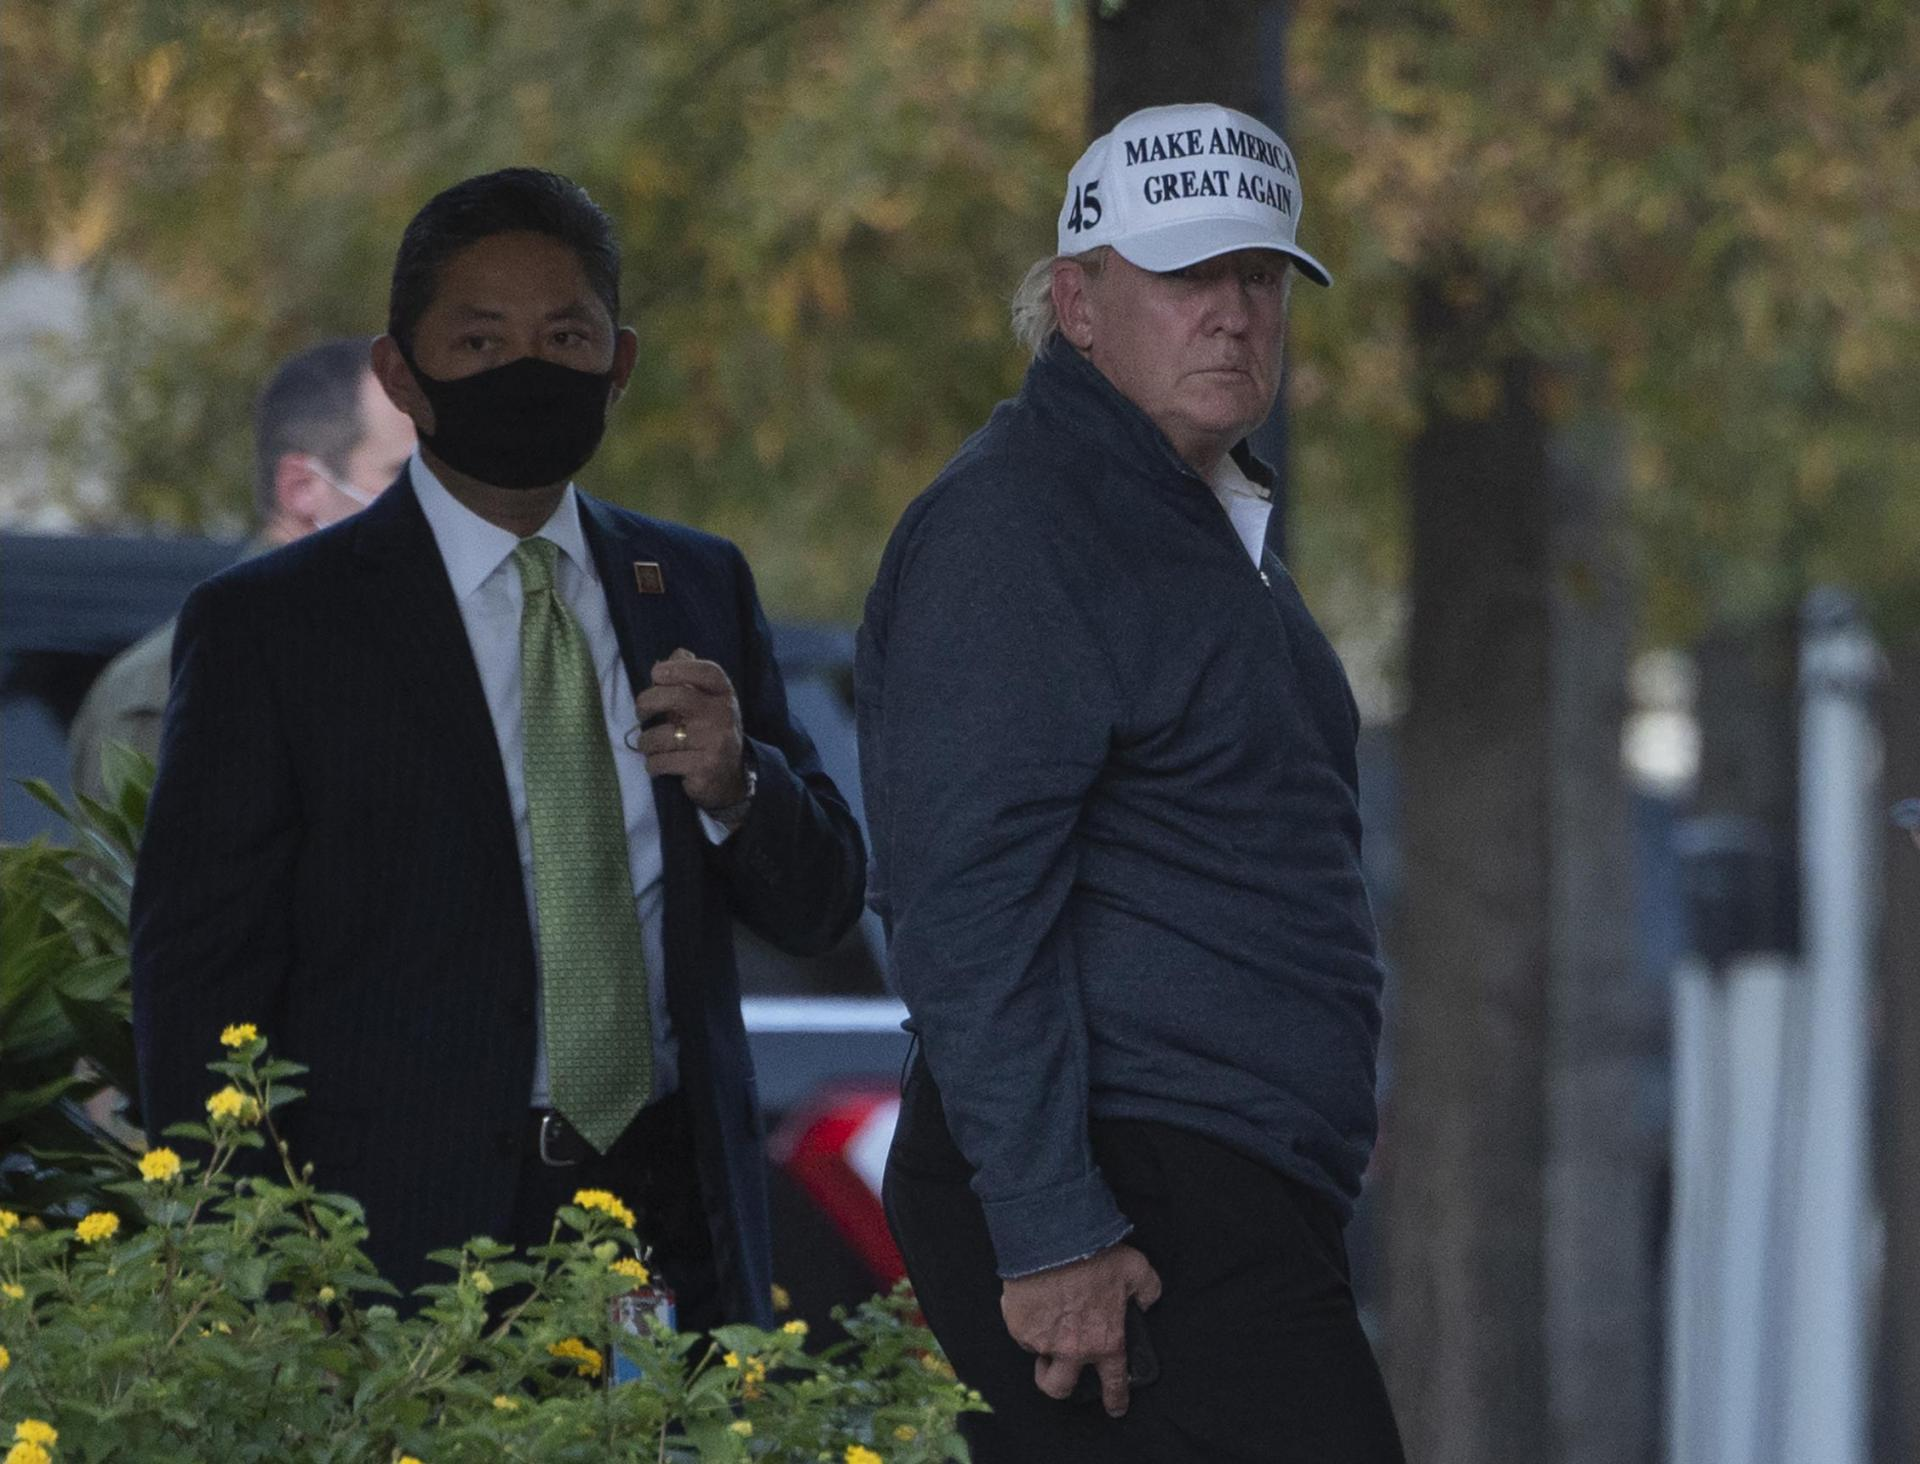 Donald Trump returns to the White House from a round of golf following Biden's declaration of victory. Photo: AFP